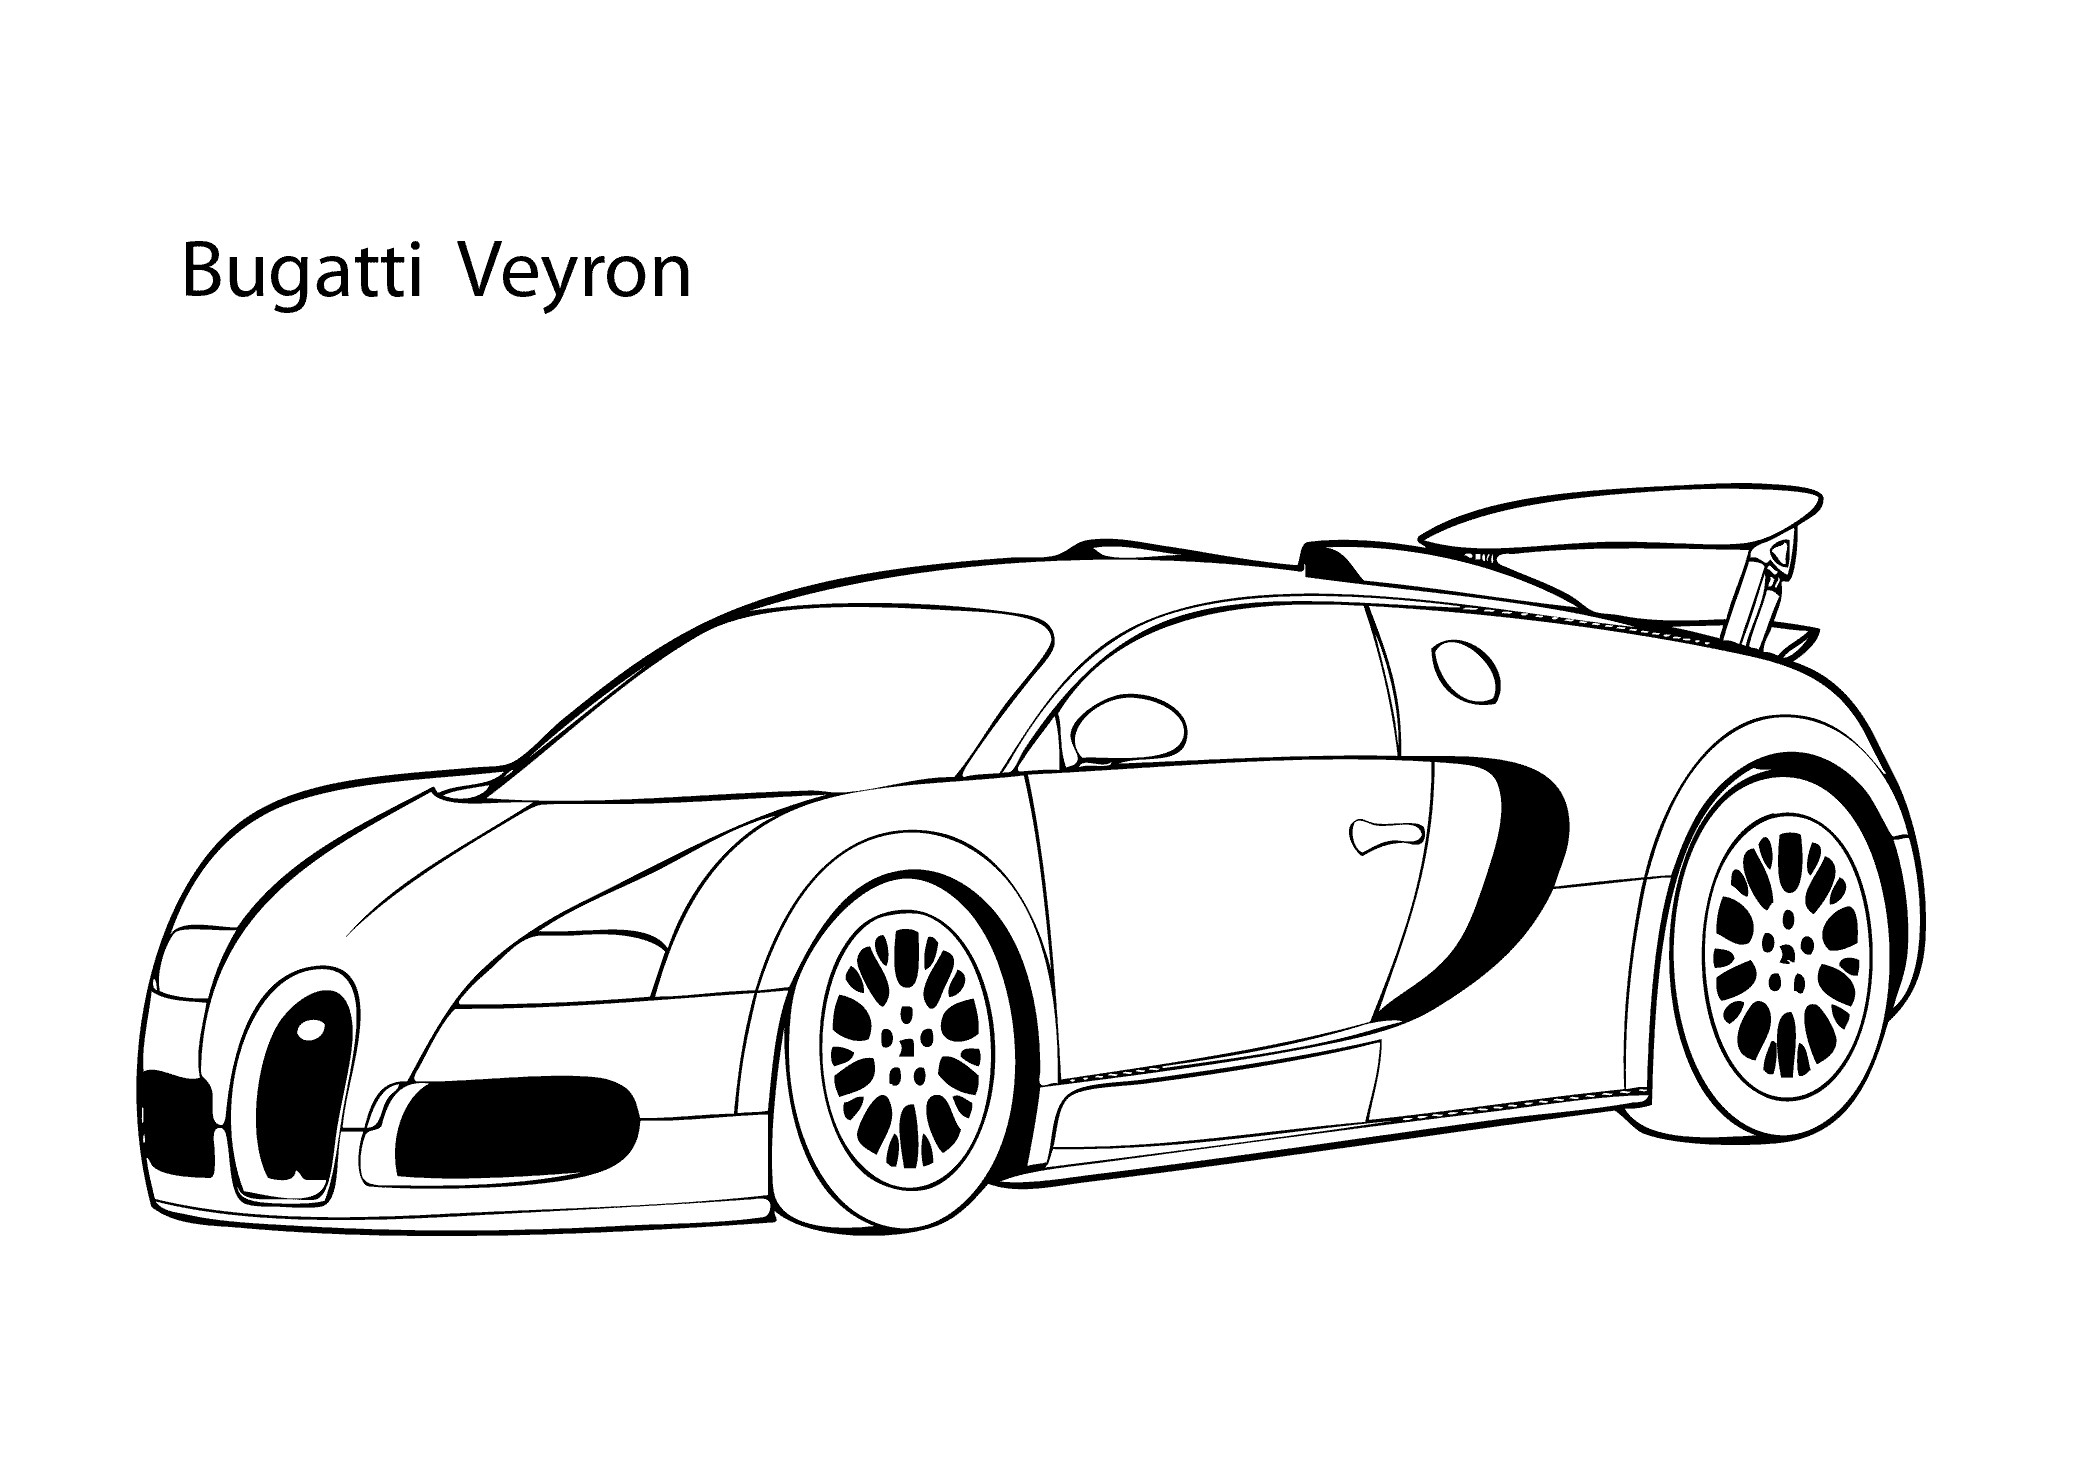 Super Car Buggati Veyron Coloring Page Fresh Coloring Pages Sports Download Of Cars Lighting Mcqueen Free Coloring Page • Cars Movies Coloring Pages Gallery